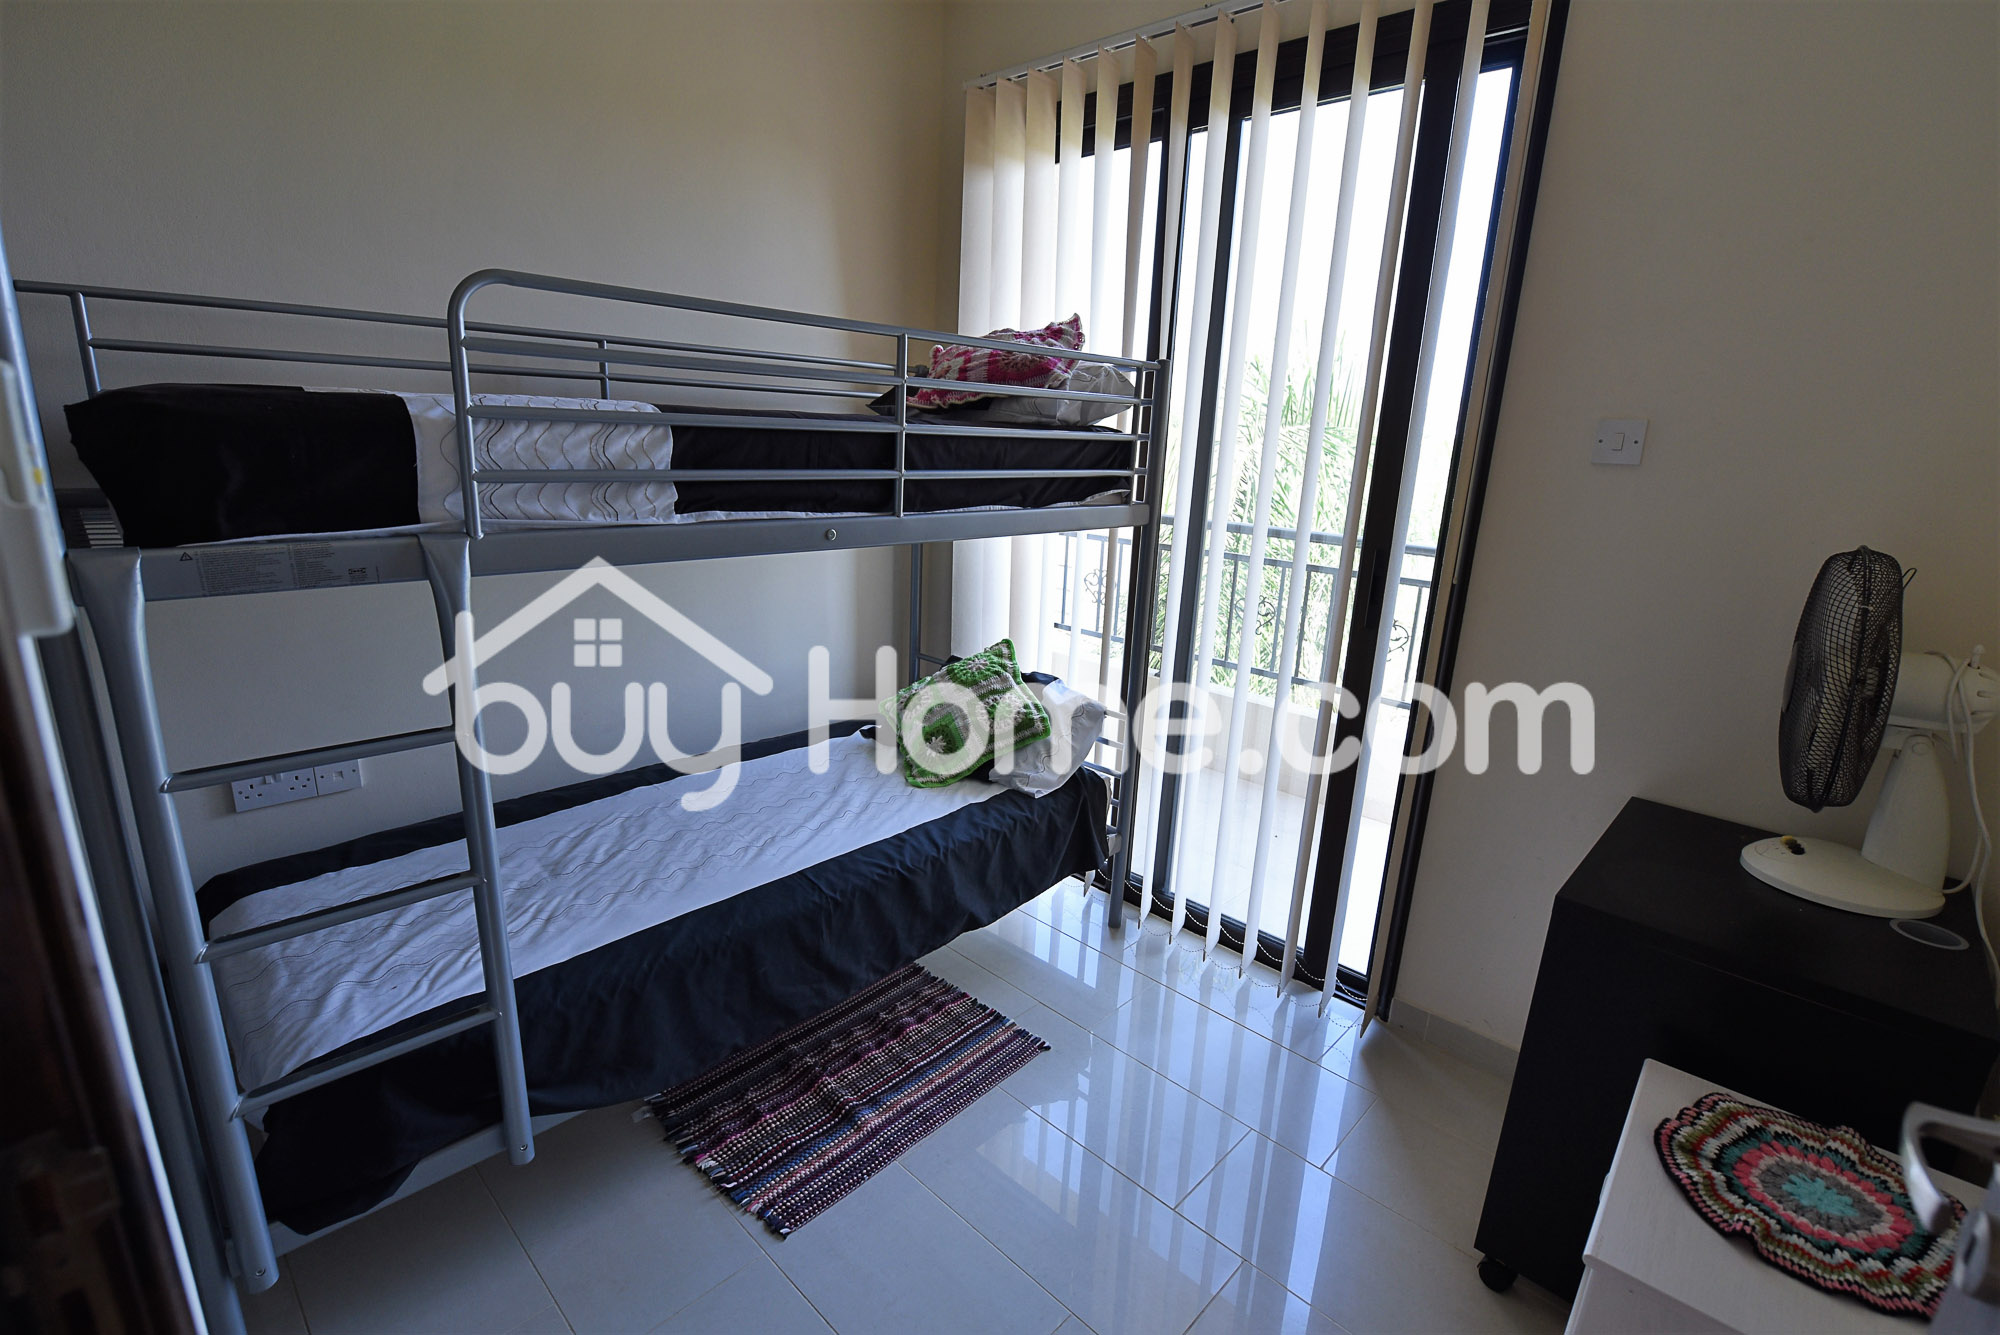 3 Bedroom House with Pool | BuyHome